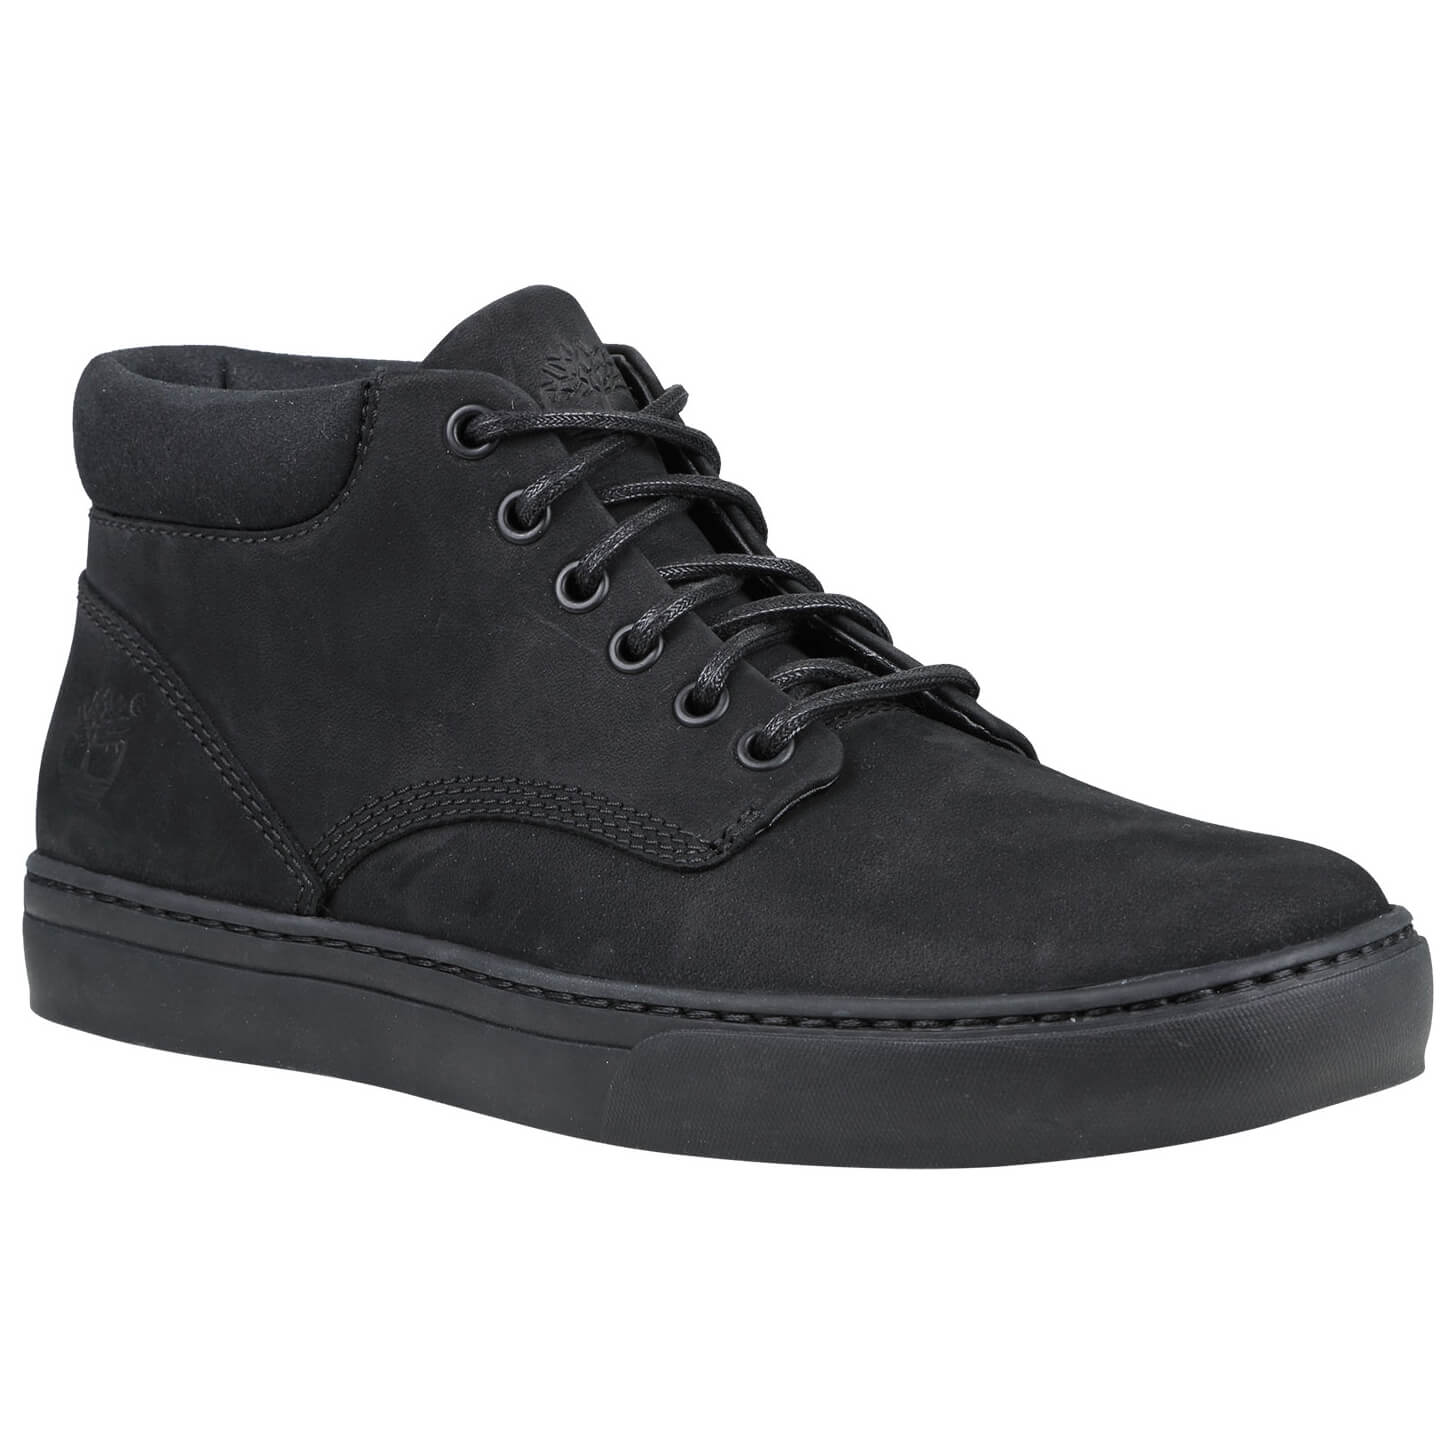 timberland adventure 2 0 cupsole chukka sneakers men 39 s free uk delivery. Black Bedroom Furniture Sets. Home Design Ideas